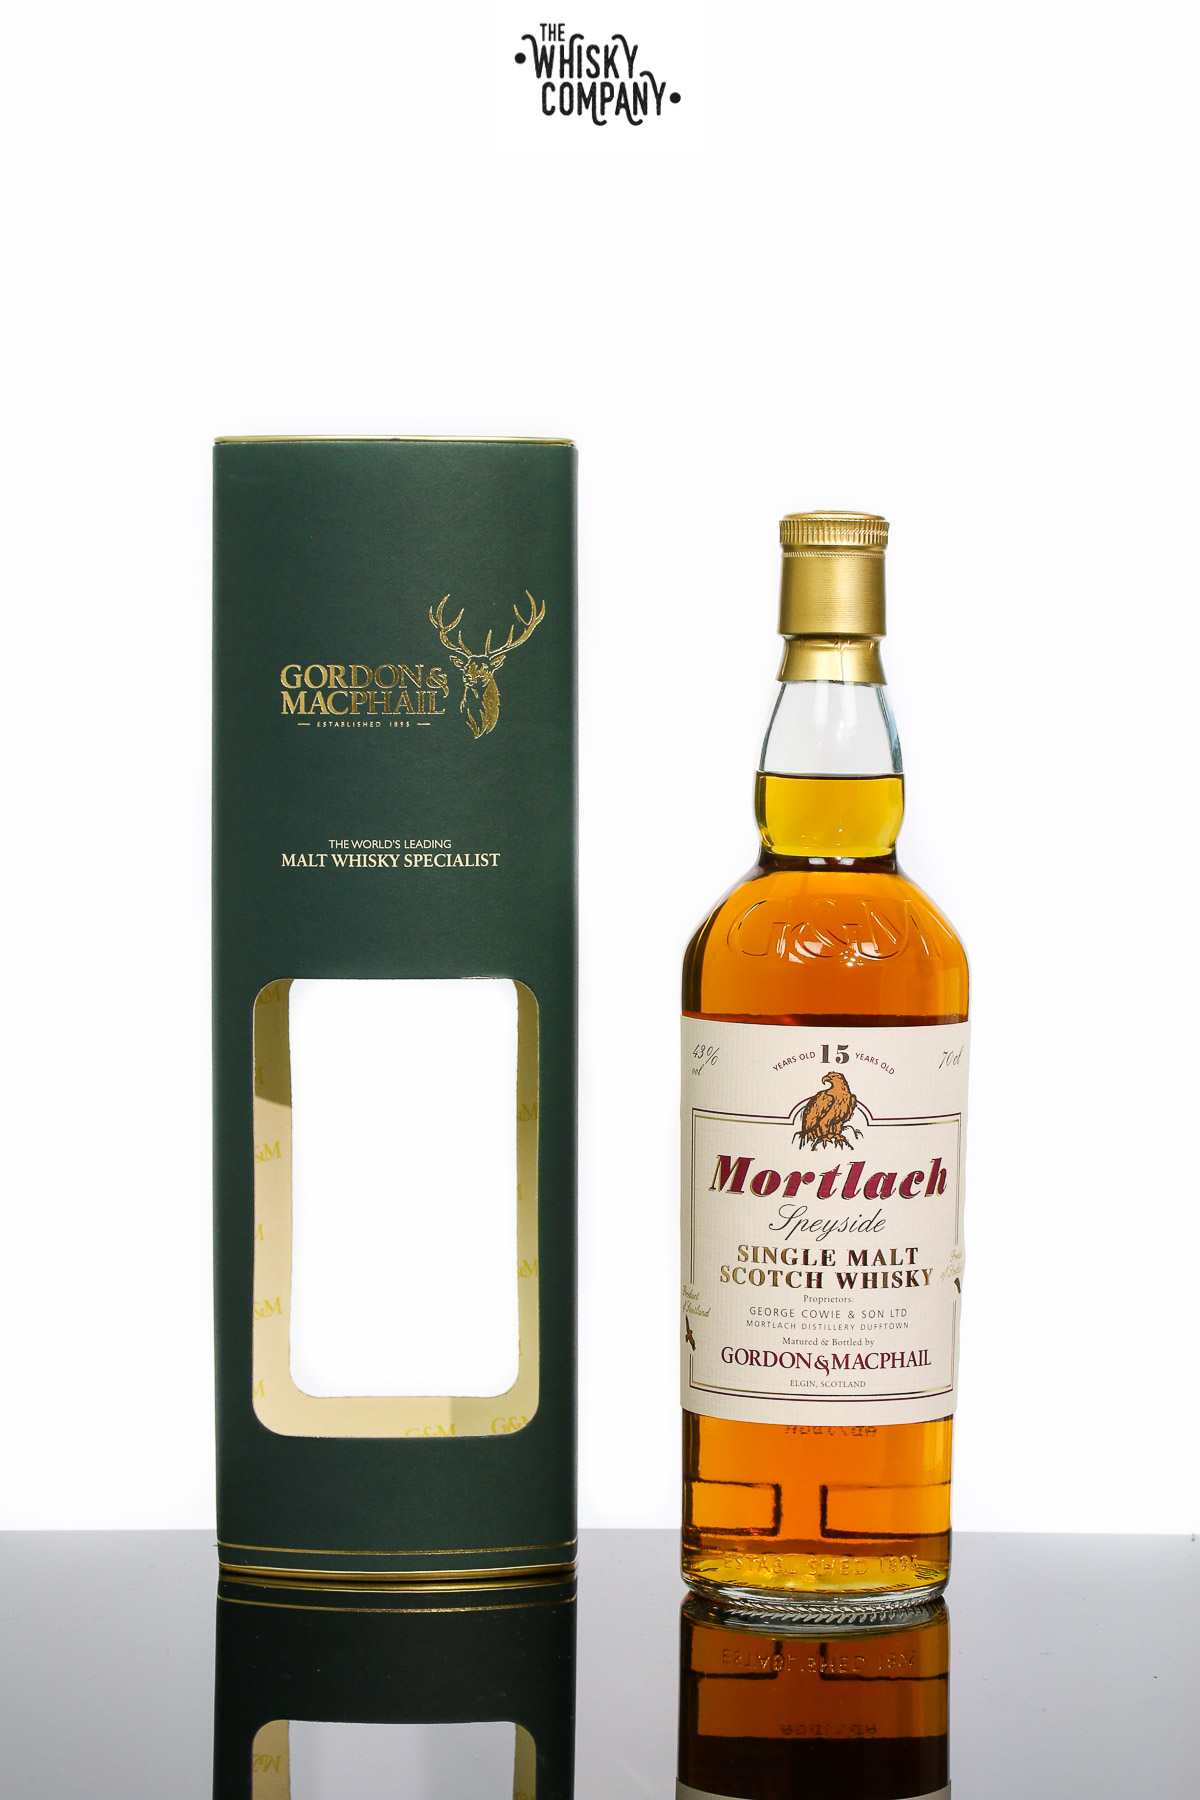 Gordon & MacPhail Mortlach 15 Years Old Speyside Single Malt Scotch Whisky (700ml)